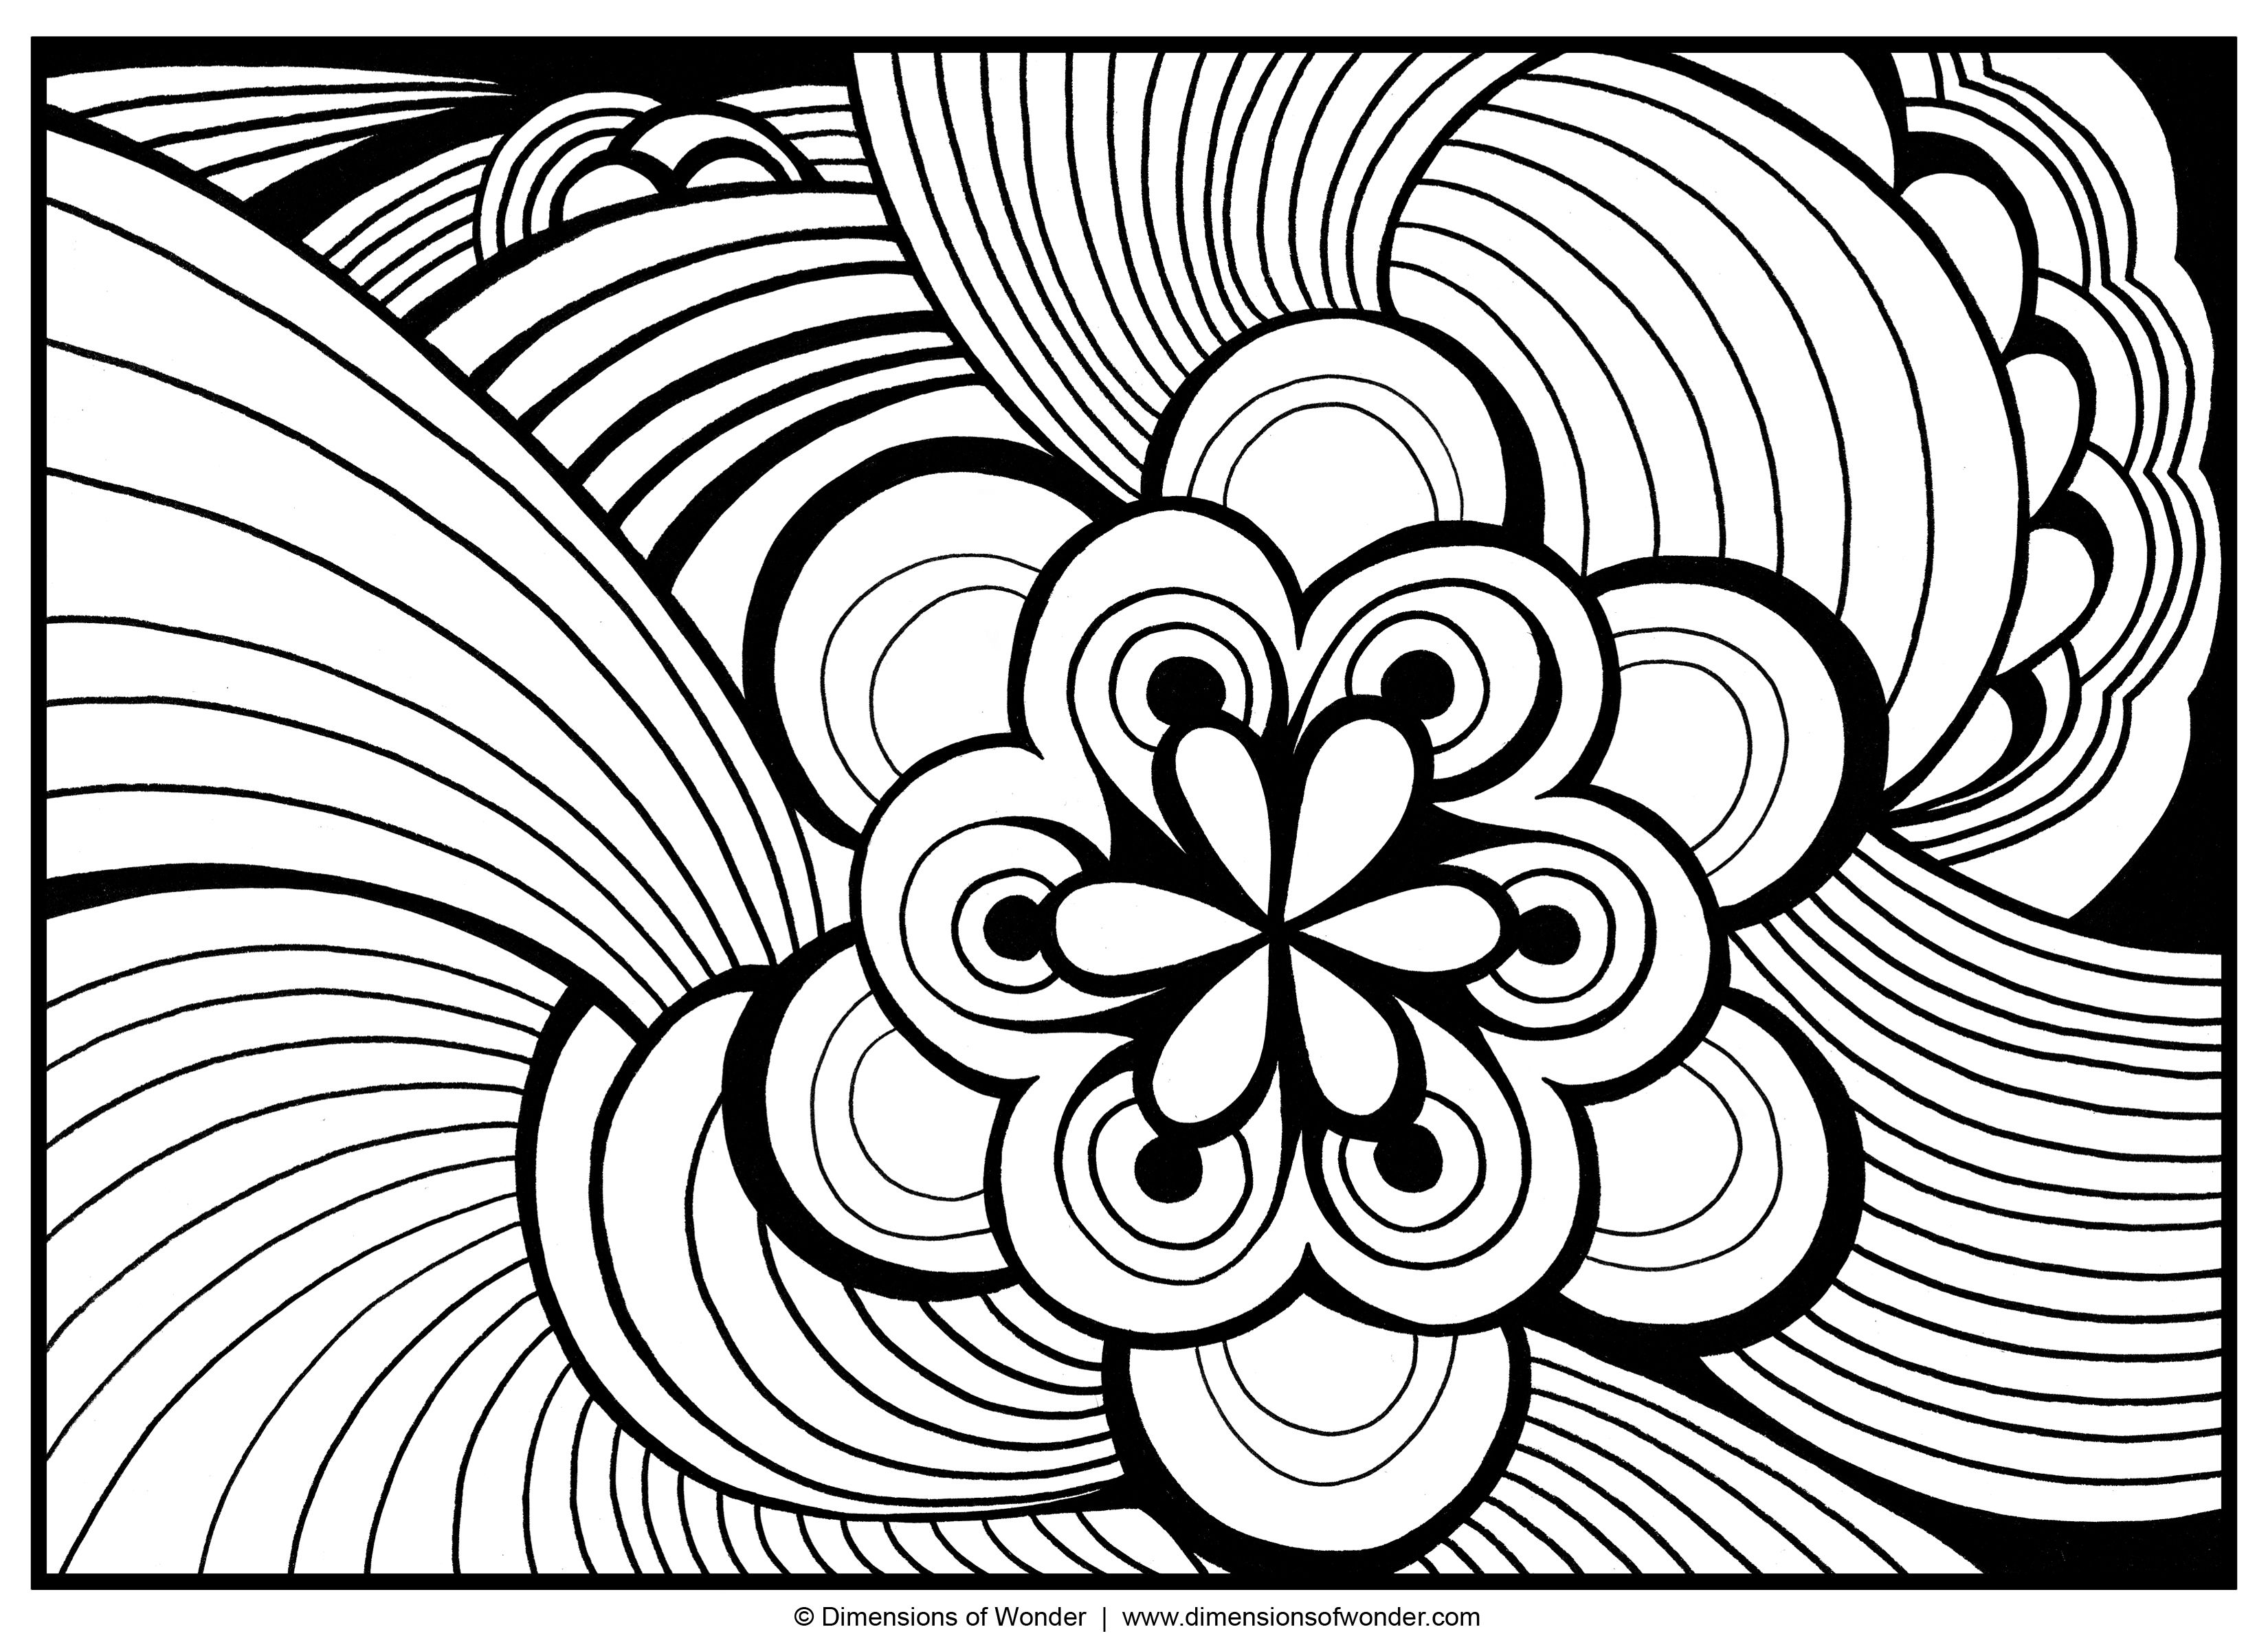 1000 images about imagens para colorir on pinterest coloring